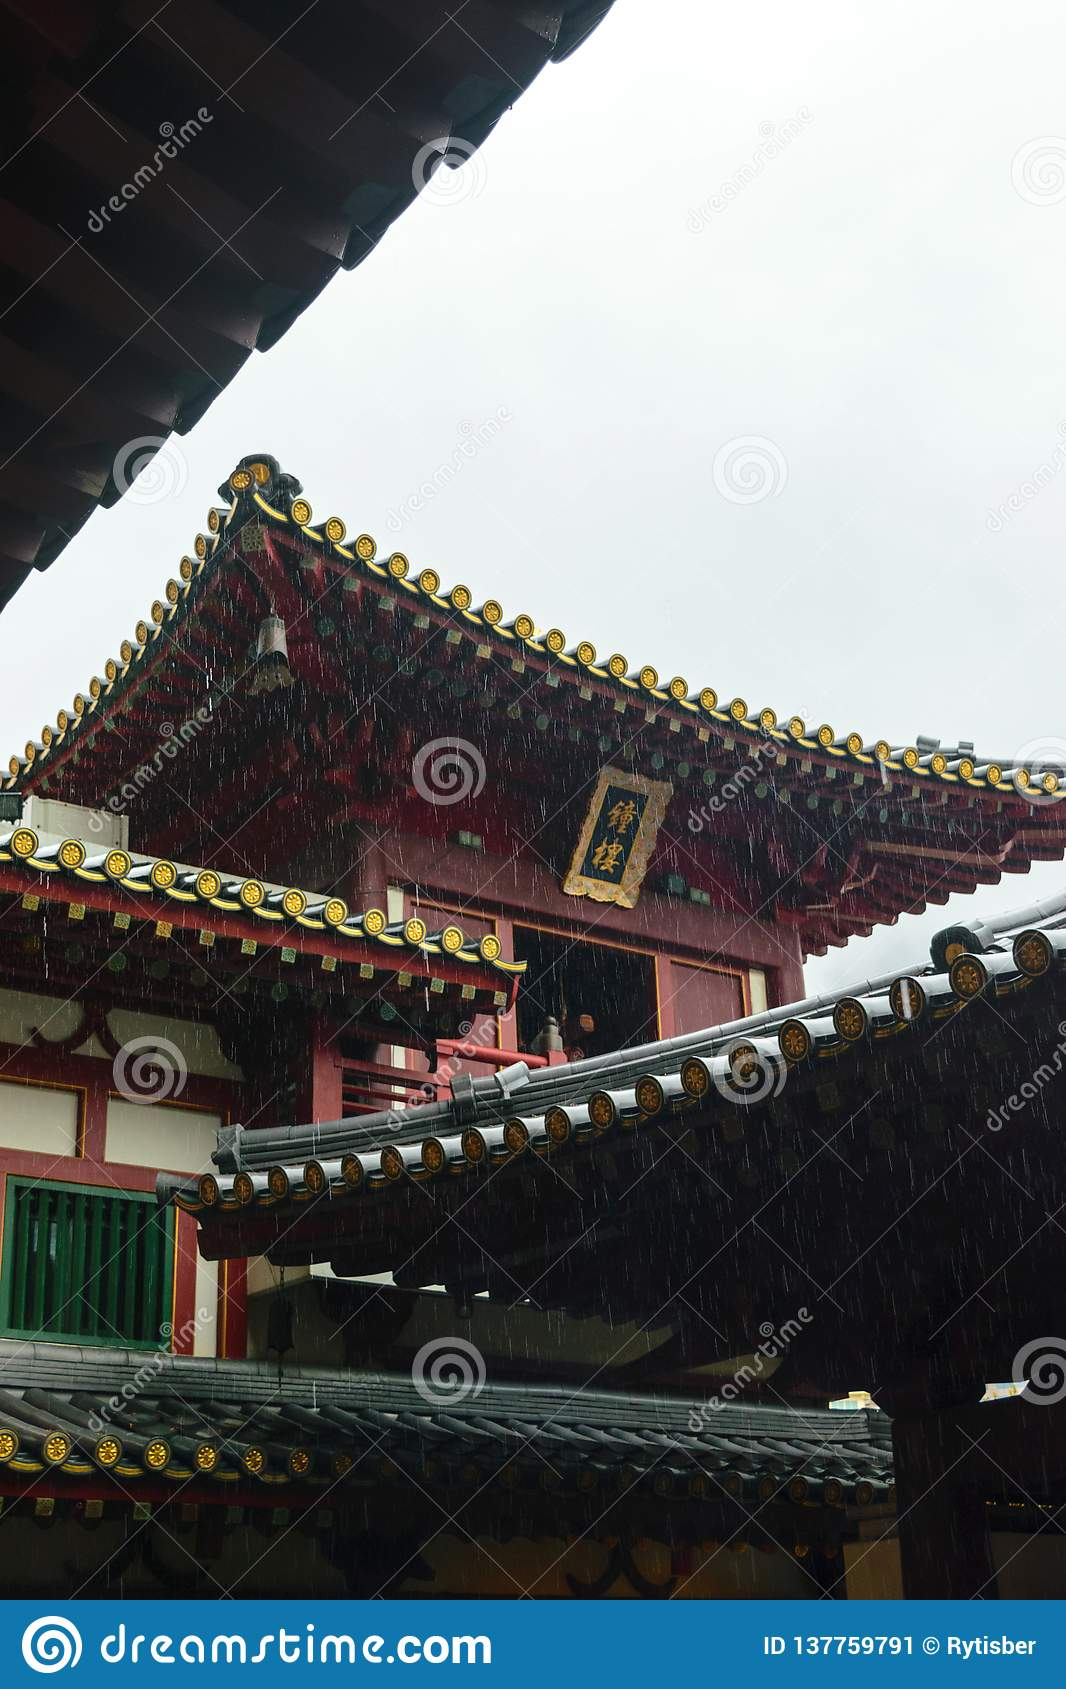 Singapore - 14 OCT 2018. The Buddha Tooth Relic temple and museum during cloudy and rainy day in Chinatown district